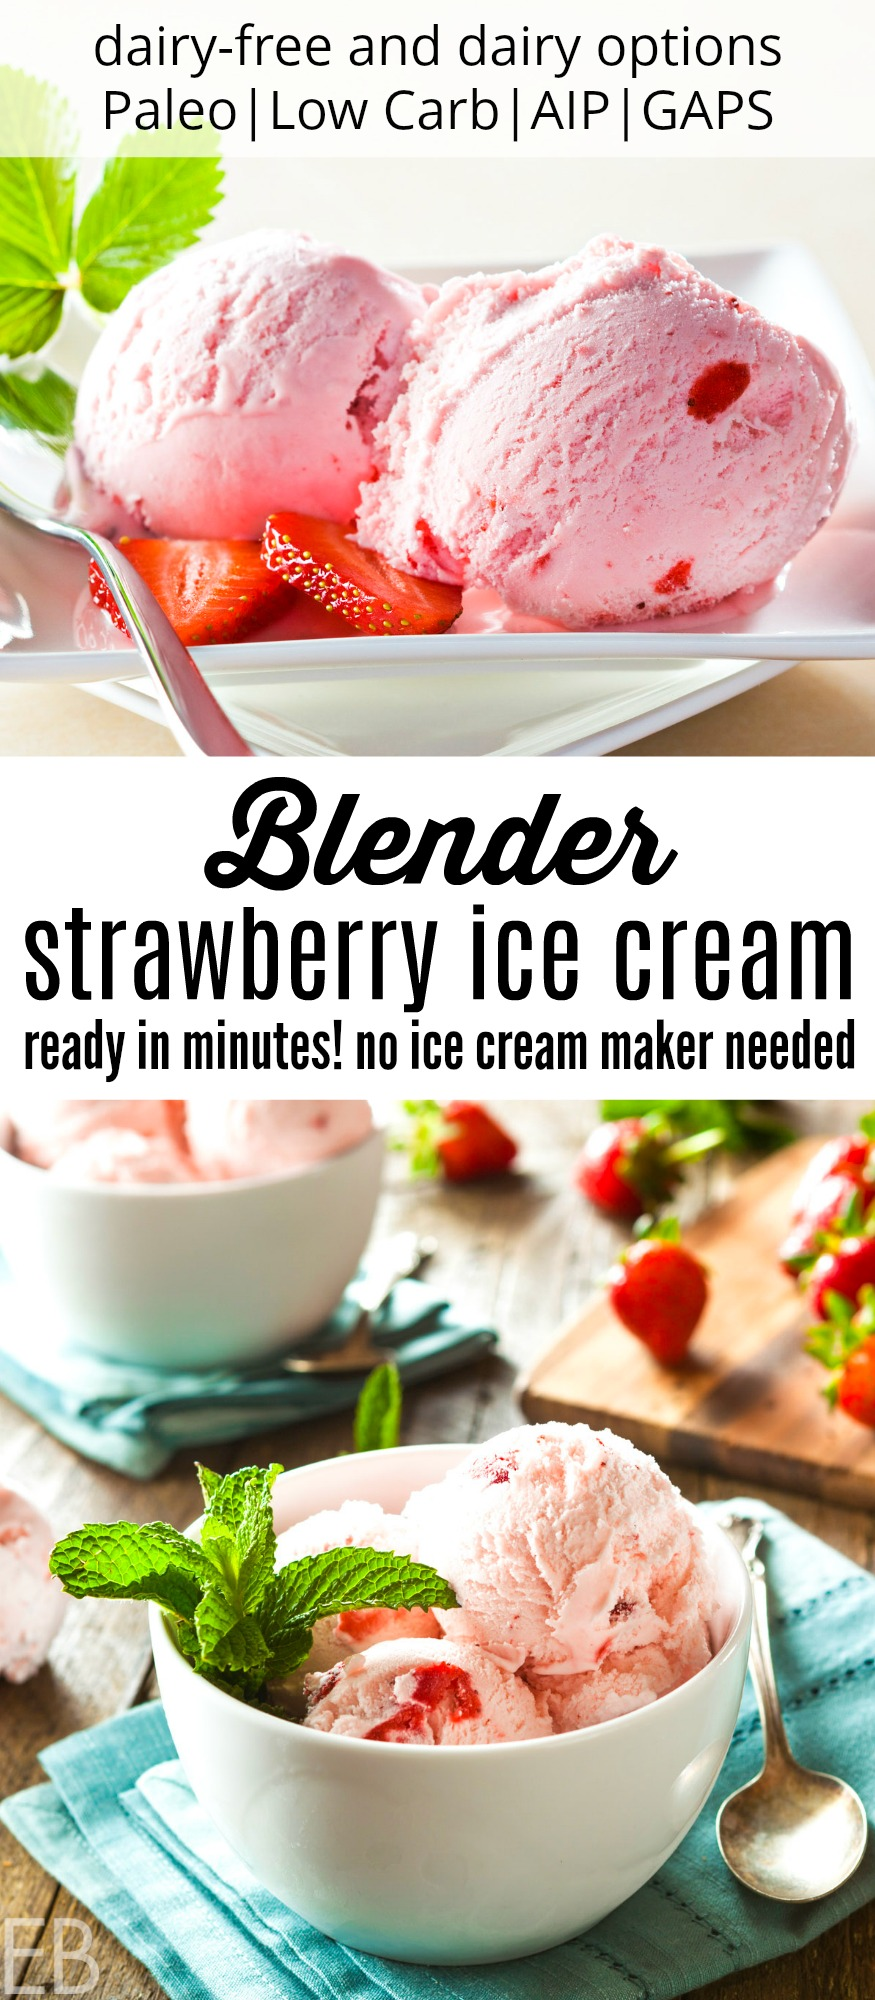 scoops of strawberry blender ice cream in a white bowl